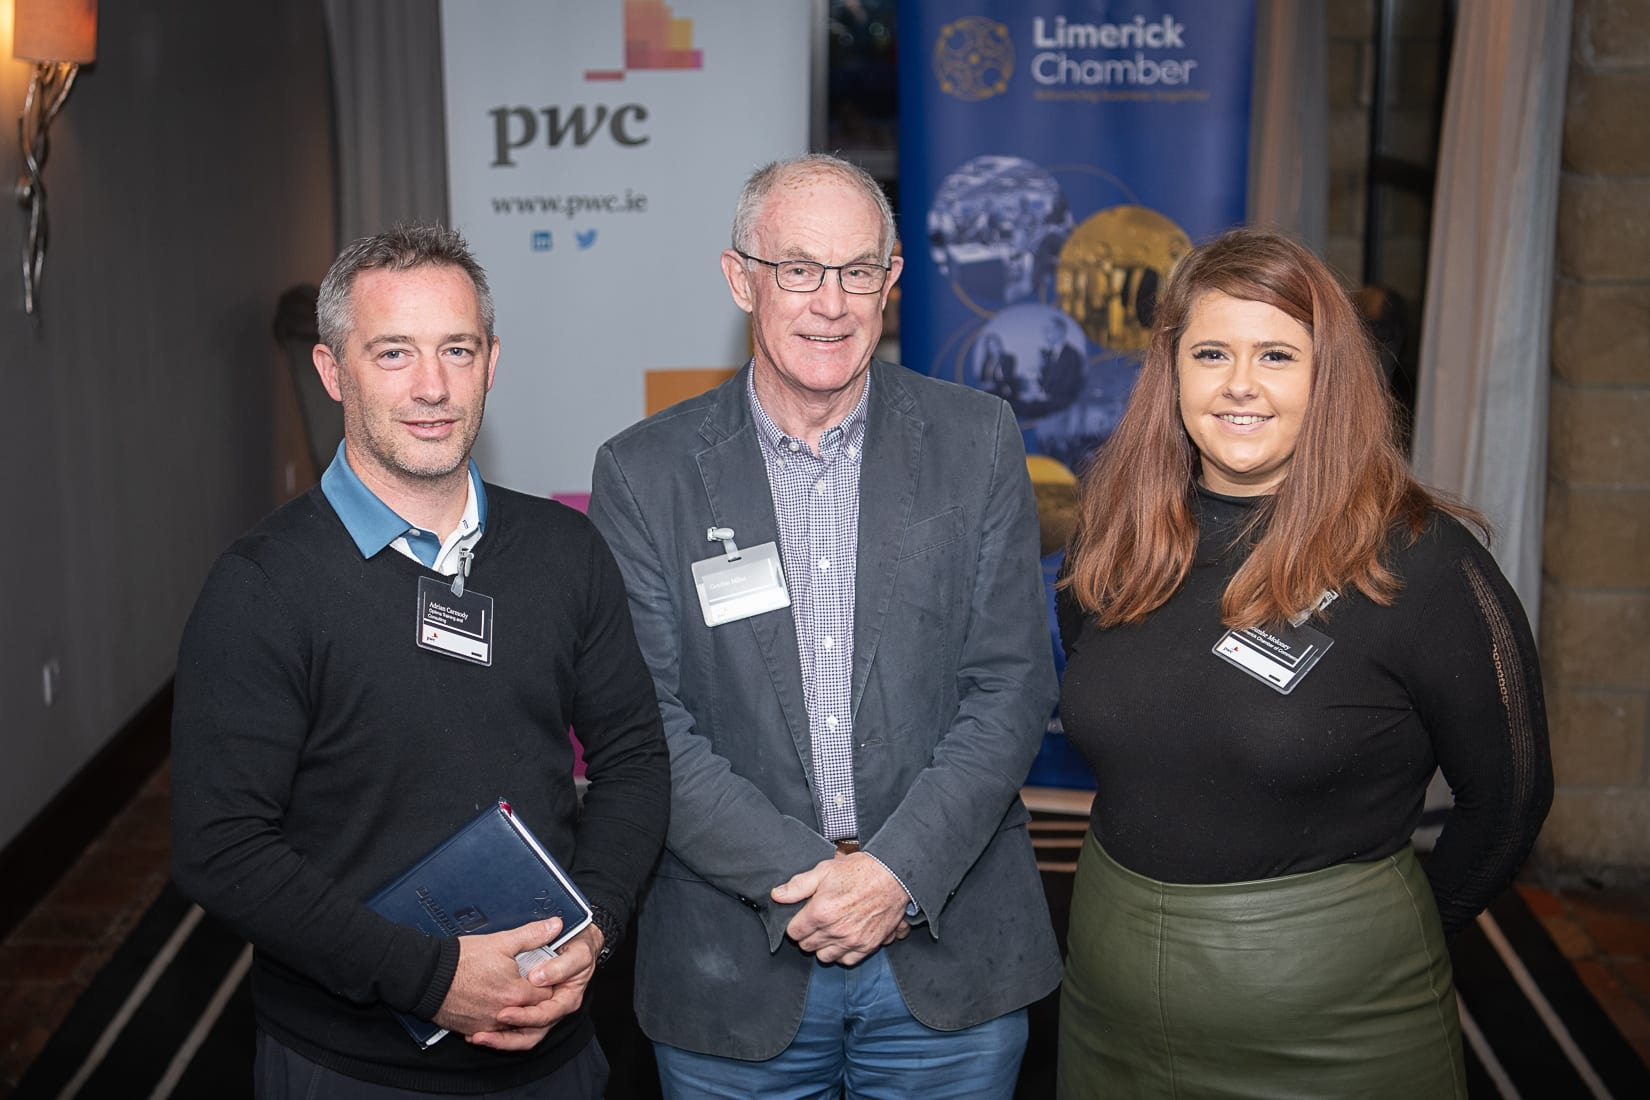 PWC Budget Breakfast in association with the Limerick Chamber which took place in the Castletroy Park Hotel on 9th October 2019, from left to right: Adrian Carmody - Optimal Training, Gordan Milne - PWC, Caoimhe Moloney - Limerick Chamber.  Photo by Morning Star Photography